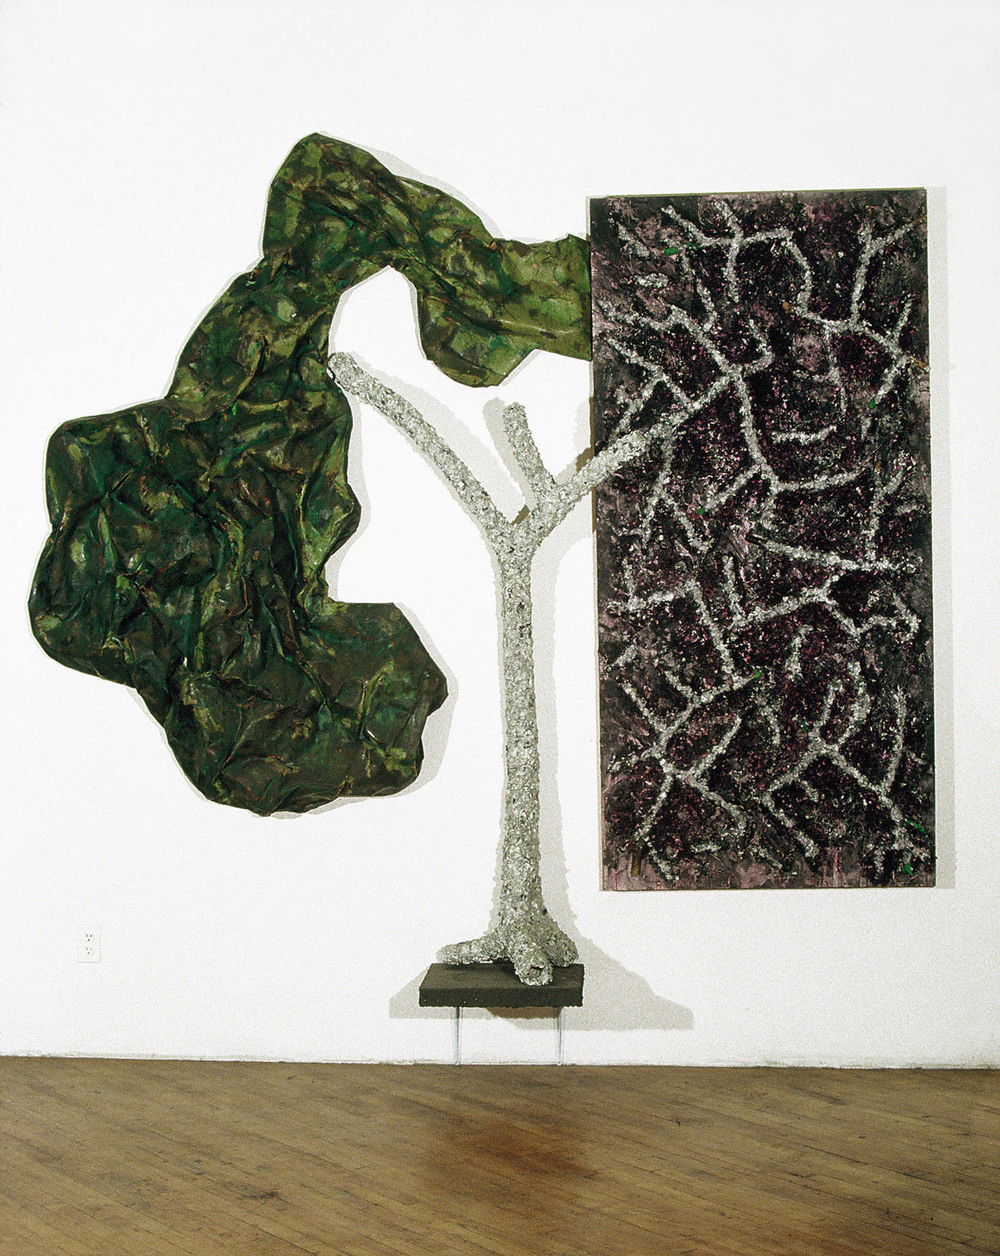 "Drooping Crest    1983  Branches, Paper, and Pigments  96"" x 104"" x 16""  (L-12)"